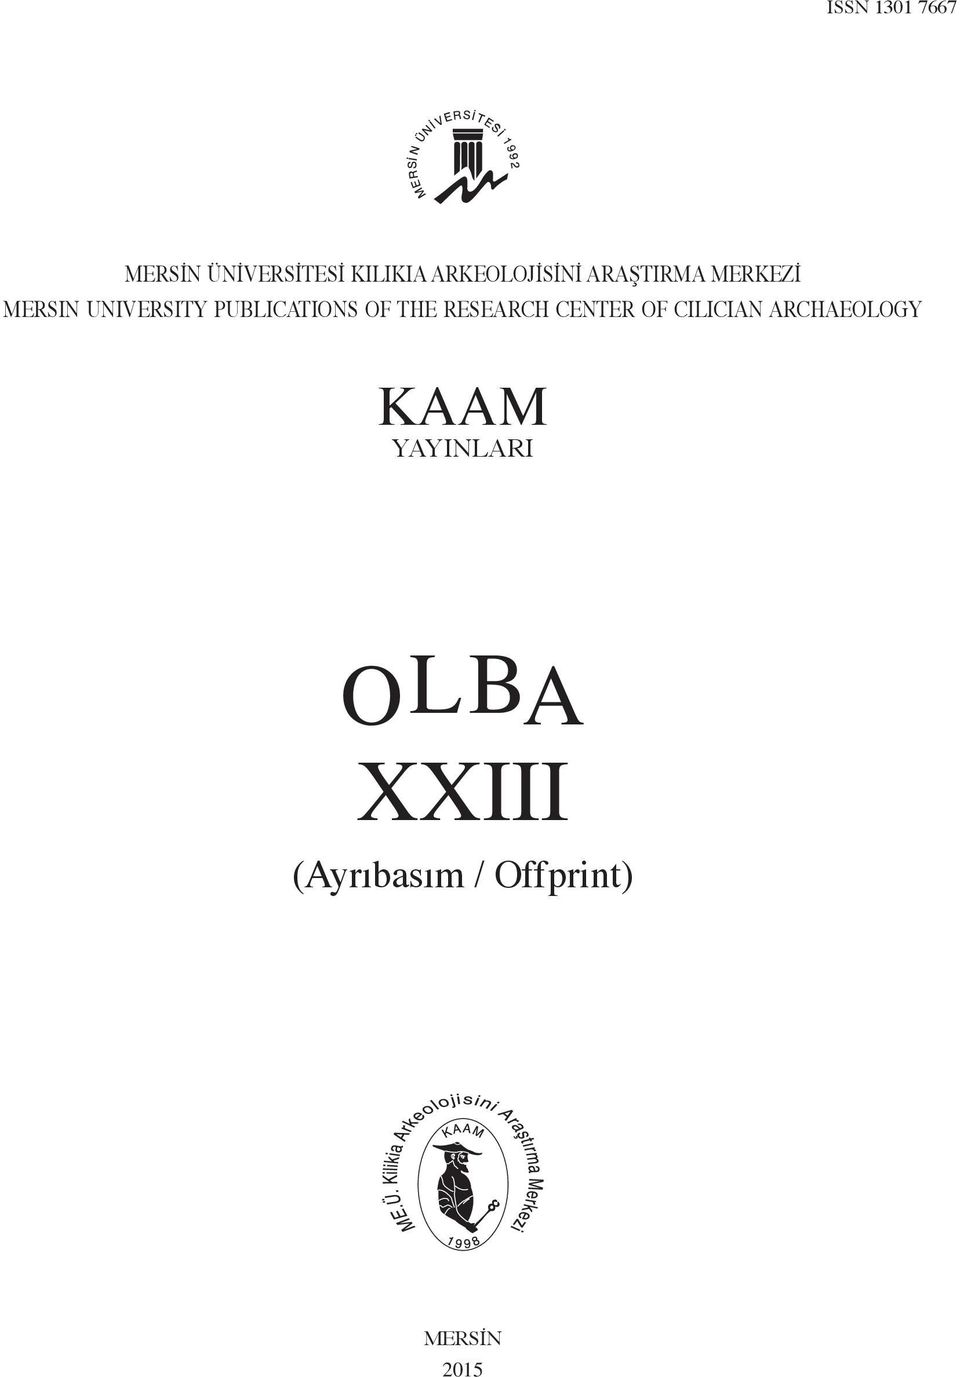 PUBLICATIONS OF THE RESEARCH CENTER OF CILICIAN